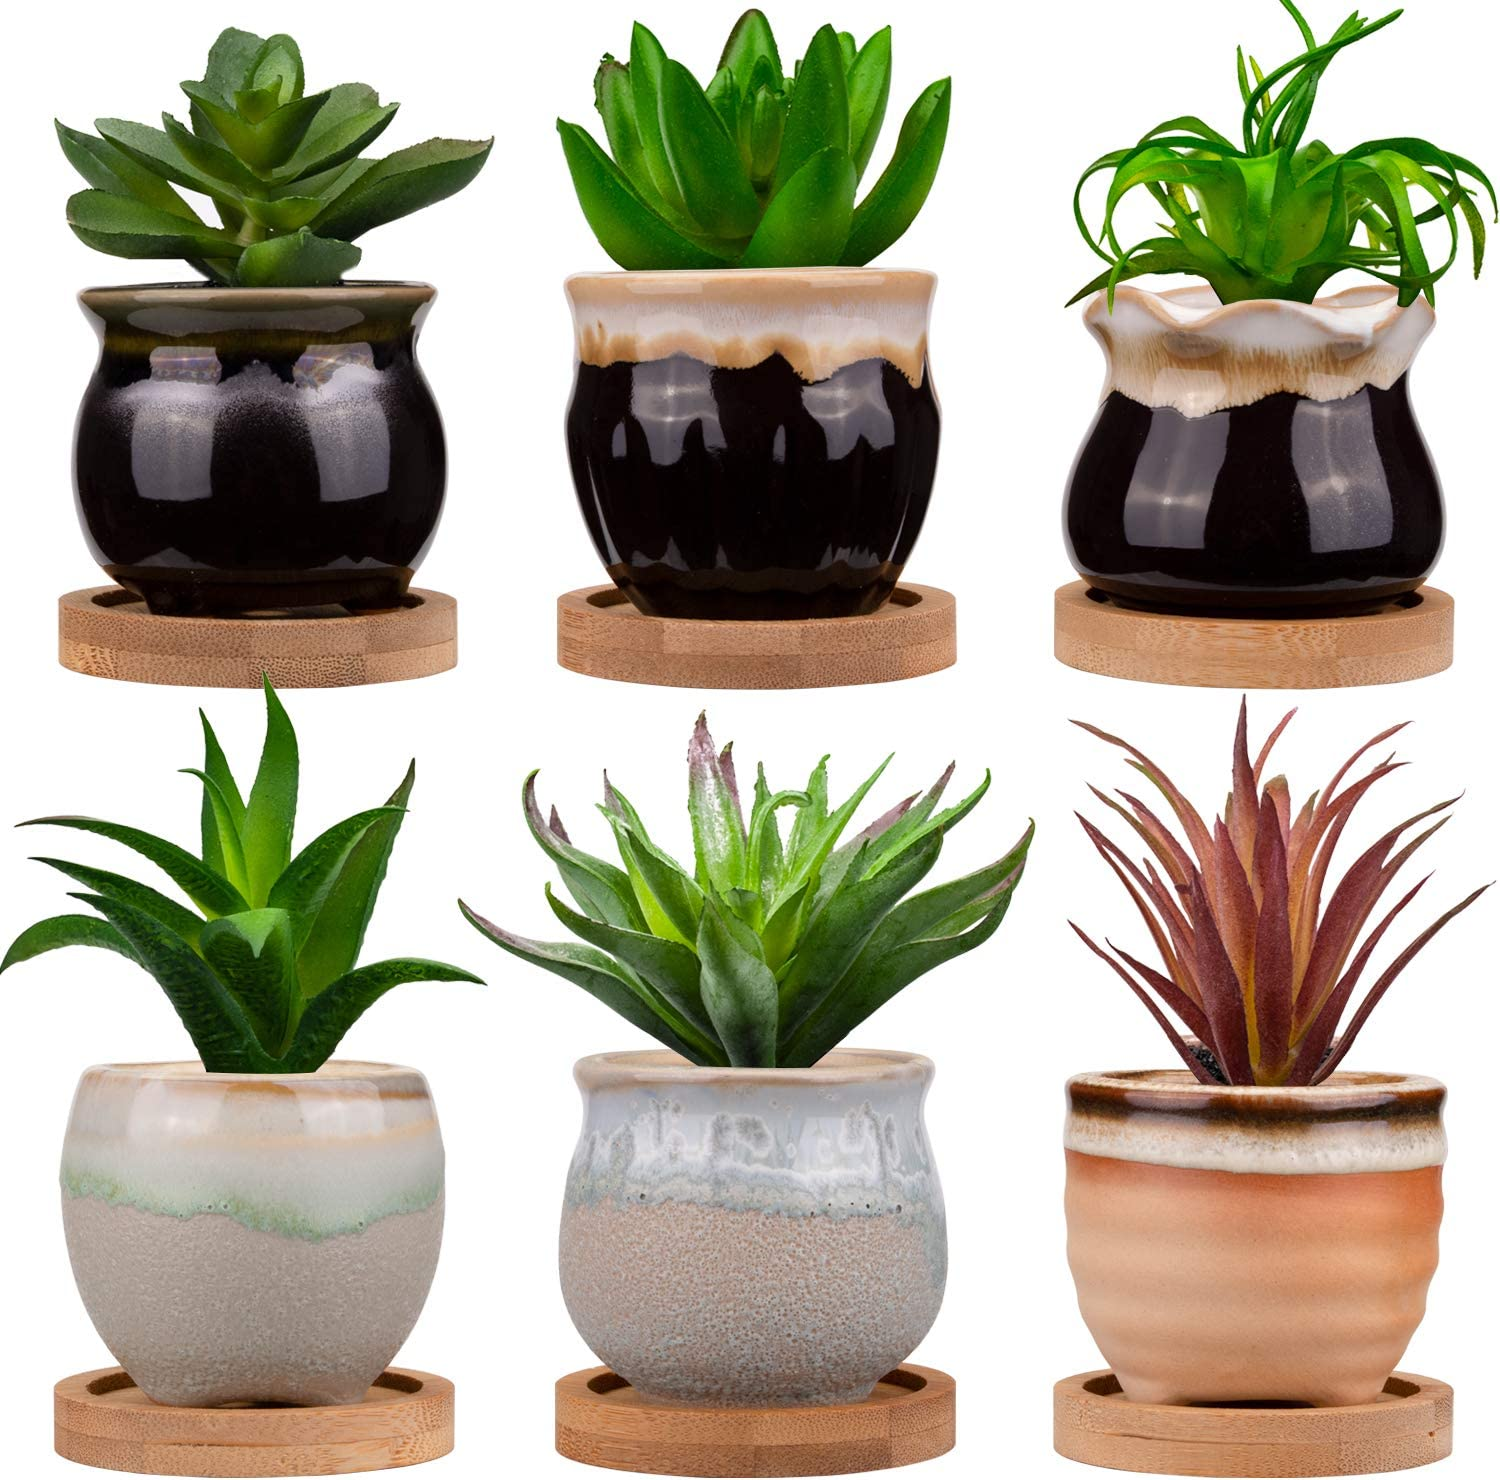 Jucoan 6 Pack 2.5 Inch Small Al sold out. free shipping Planter Succulent Min Pots Ceramic